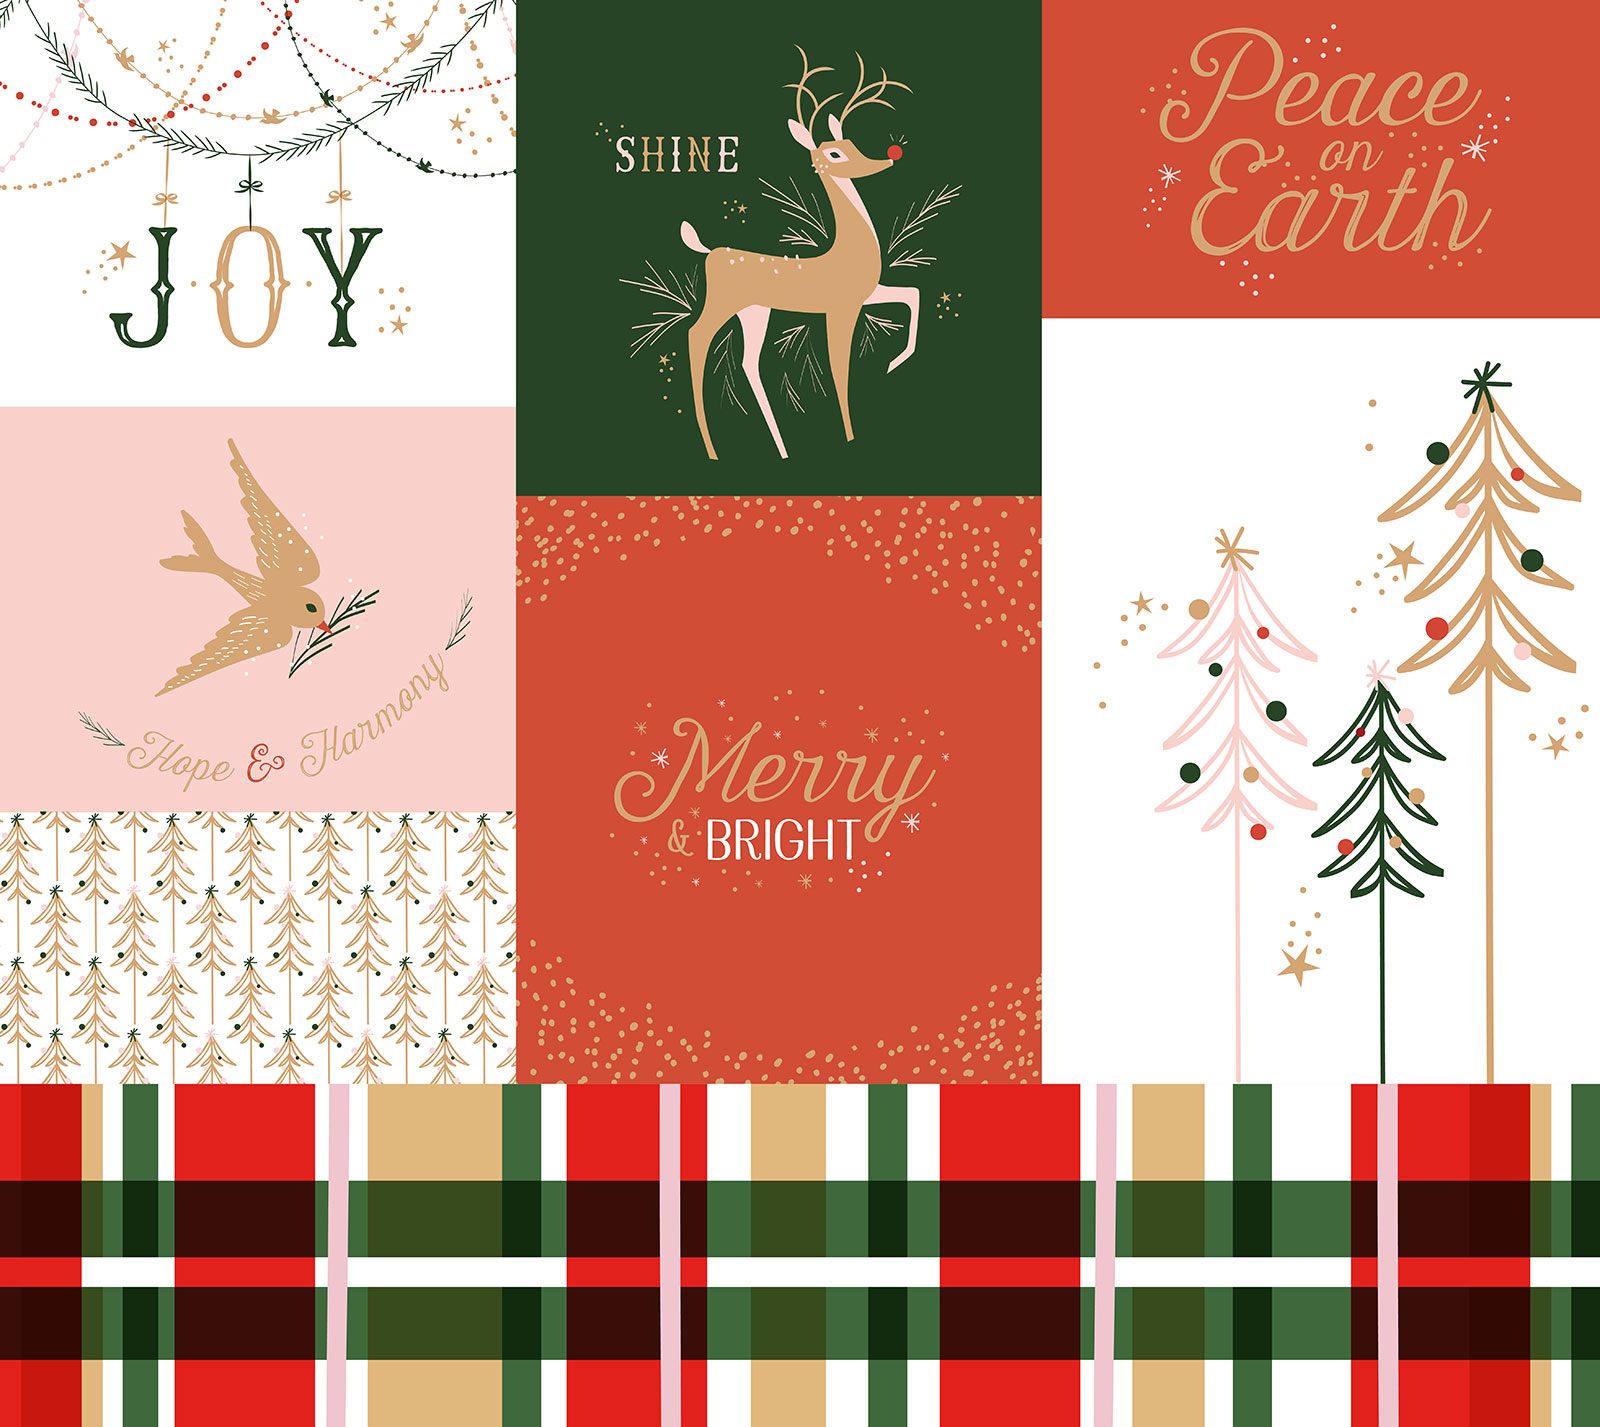 Dixie Holiday Graphics - Surface Design